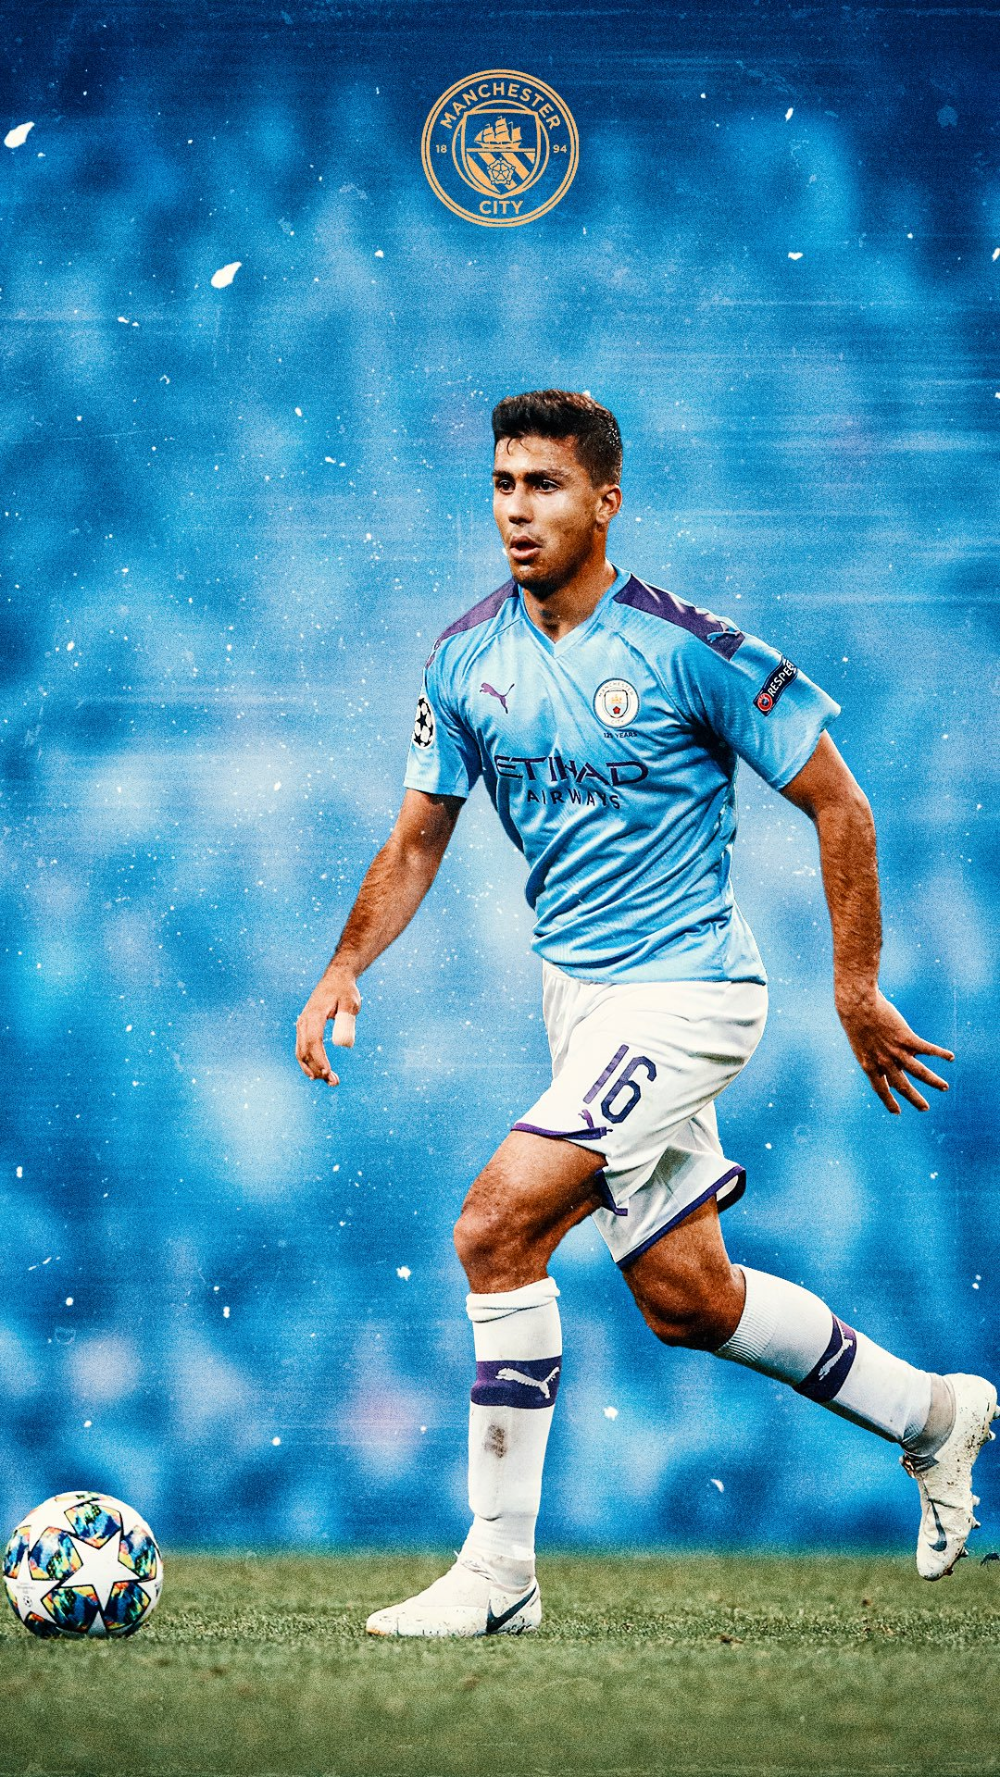 Manchester City On Twitter Manchester City Manchester City Wallpaper Manchester City Football Club